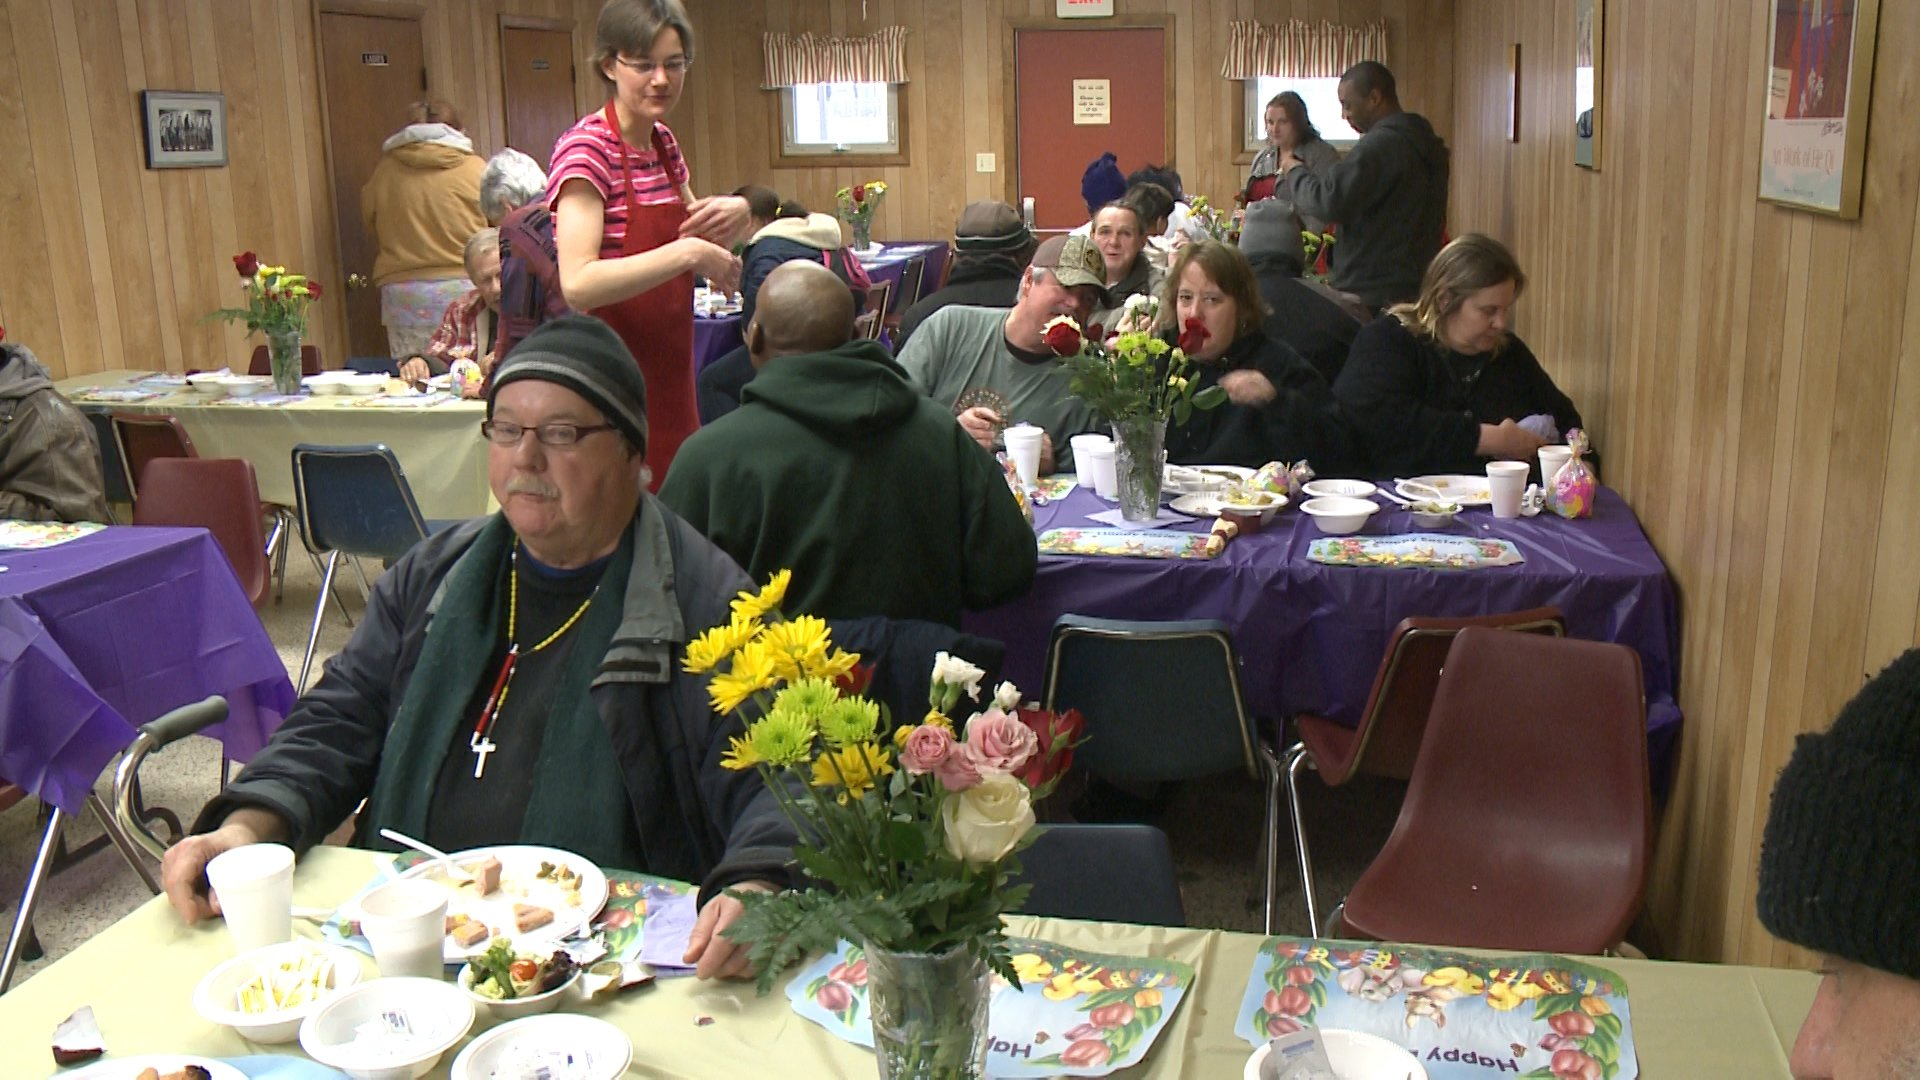 Soup Kitchen Meal Soup Kitchen Serves Free Easter Meal Erie News Now News